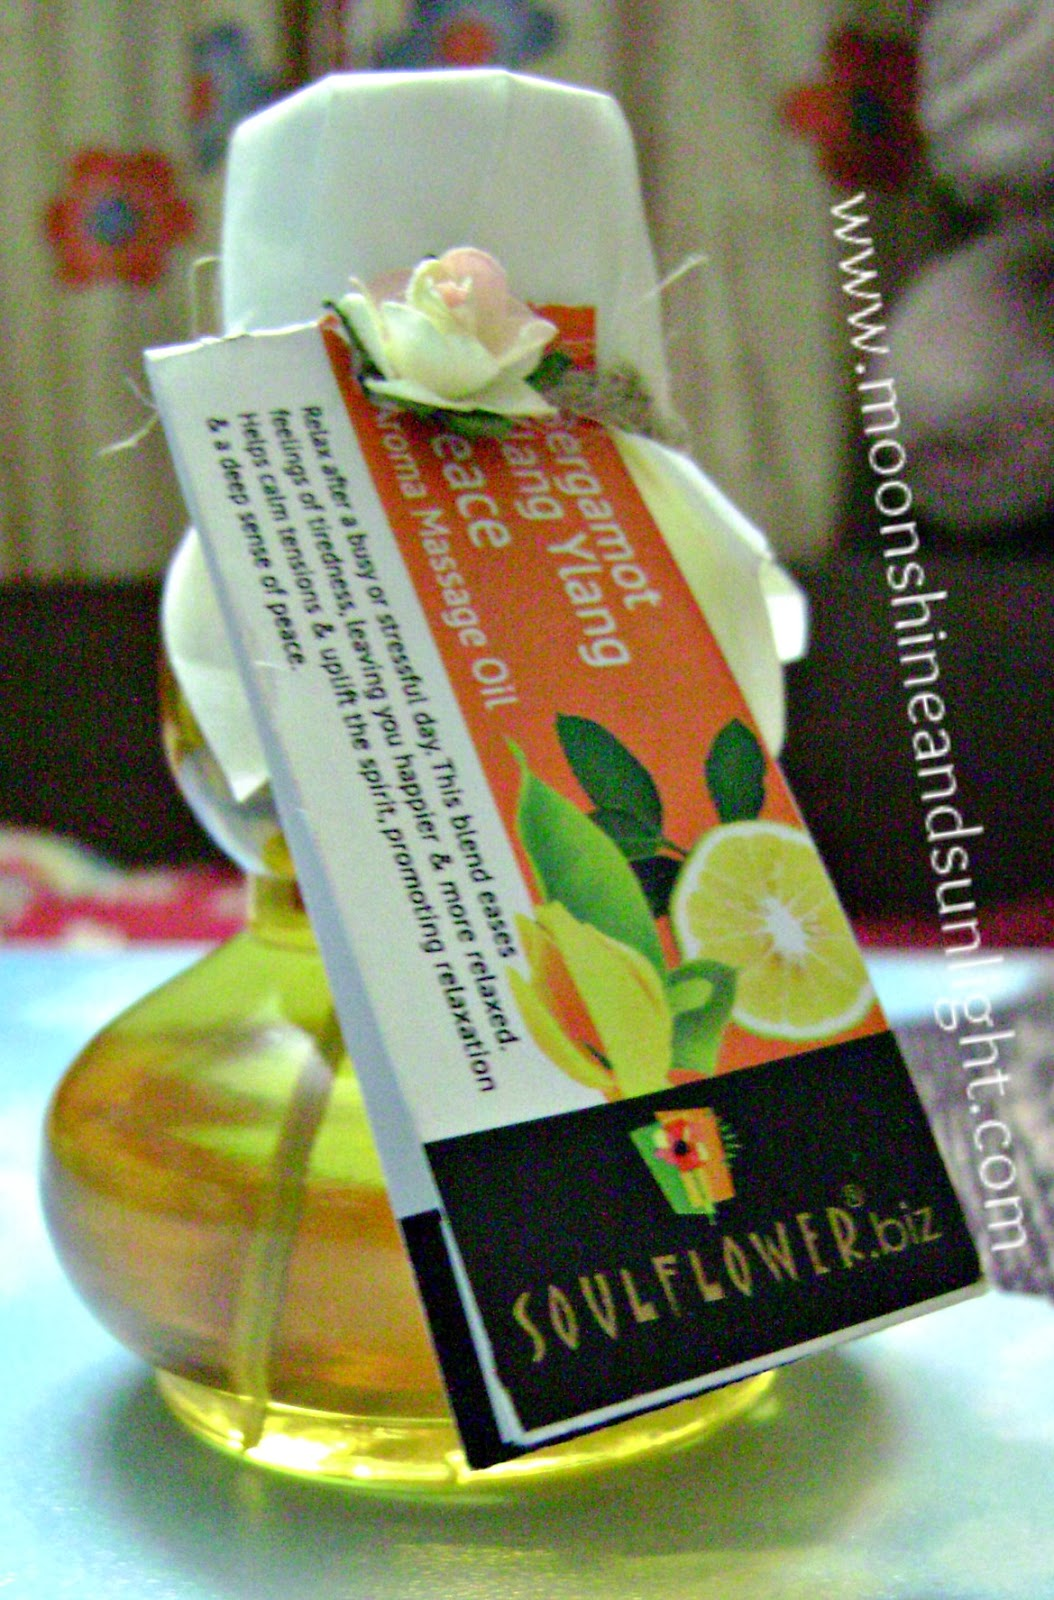 Soulfower Peace Aroma massage oil review